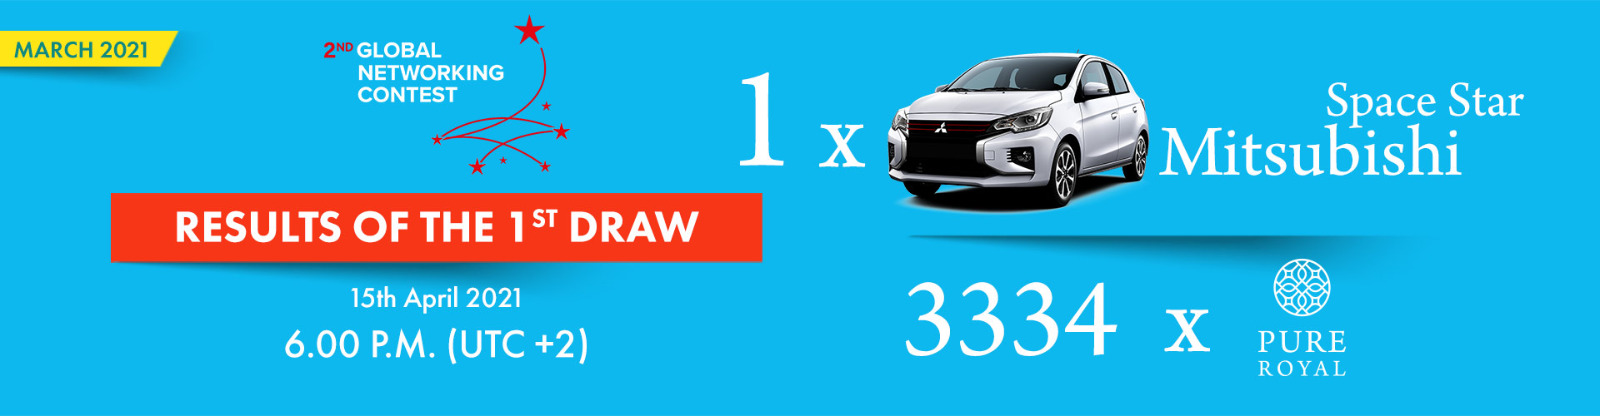 WIN THE CAR OF YOUR DREAMS!